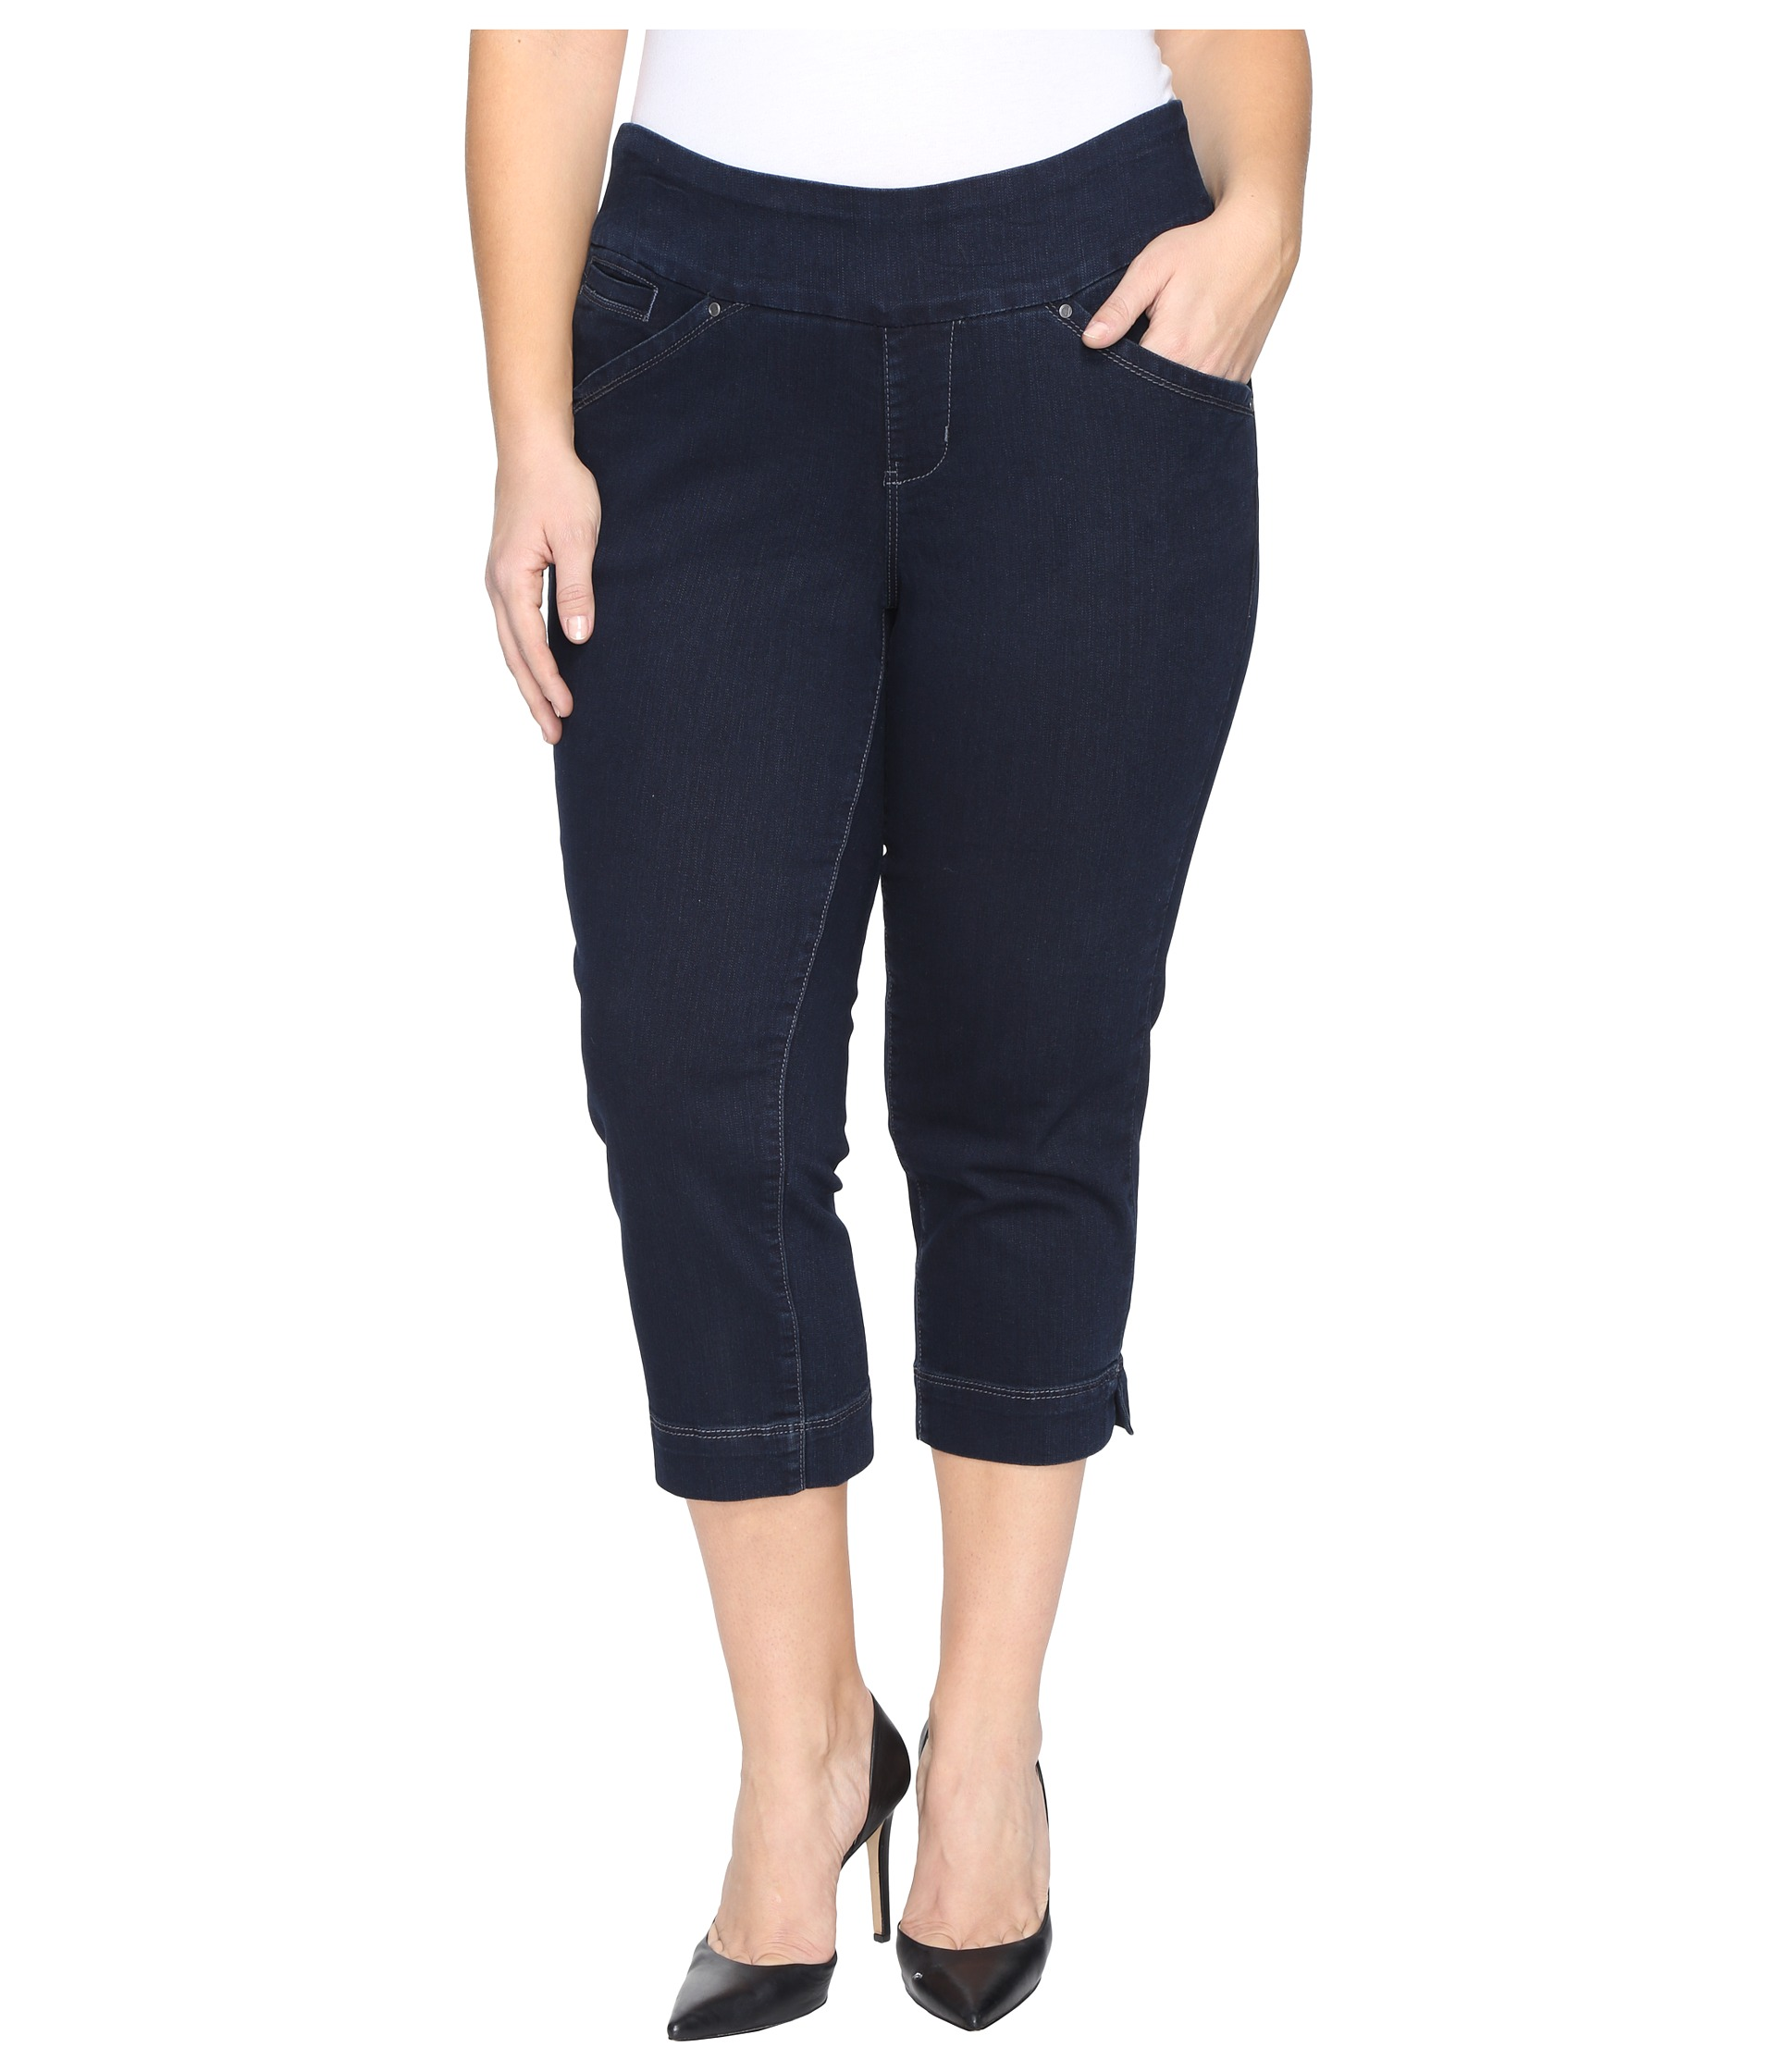 I normally avoid pull on pants that don't have a yoga wide waist band and a high waist on the grounds that every single pair of RTW pull on pants I've tried will fit great when I put them on and then as the elastic relaxes, they'll creep down and eventually I'm hiking my pants up every five minutes.